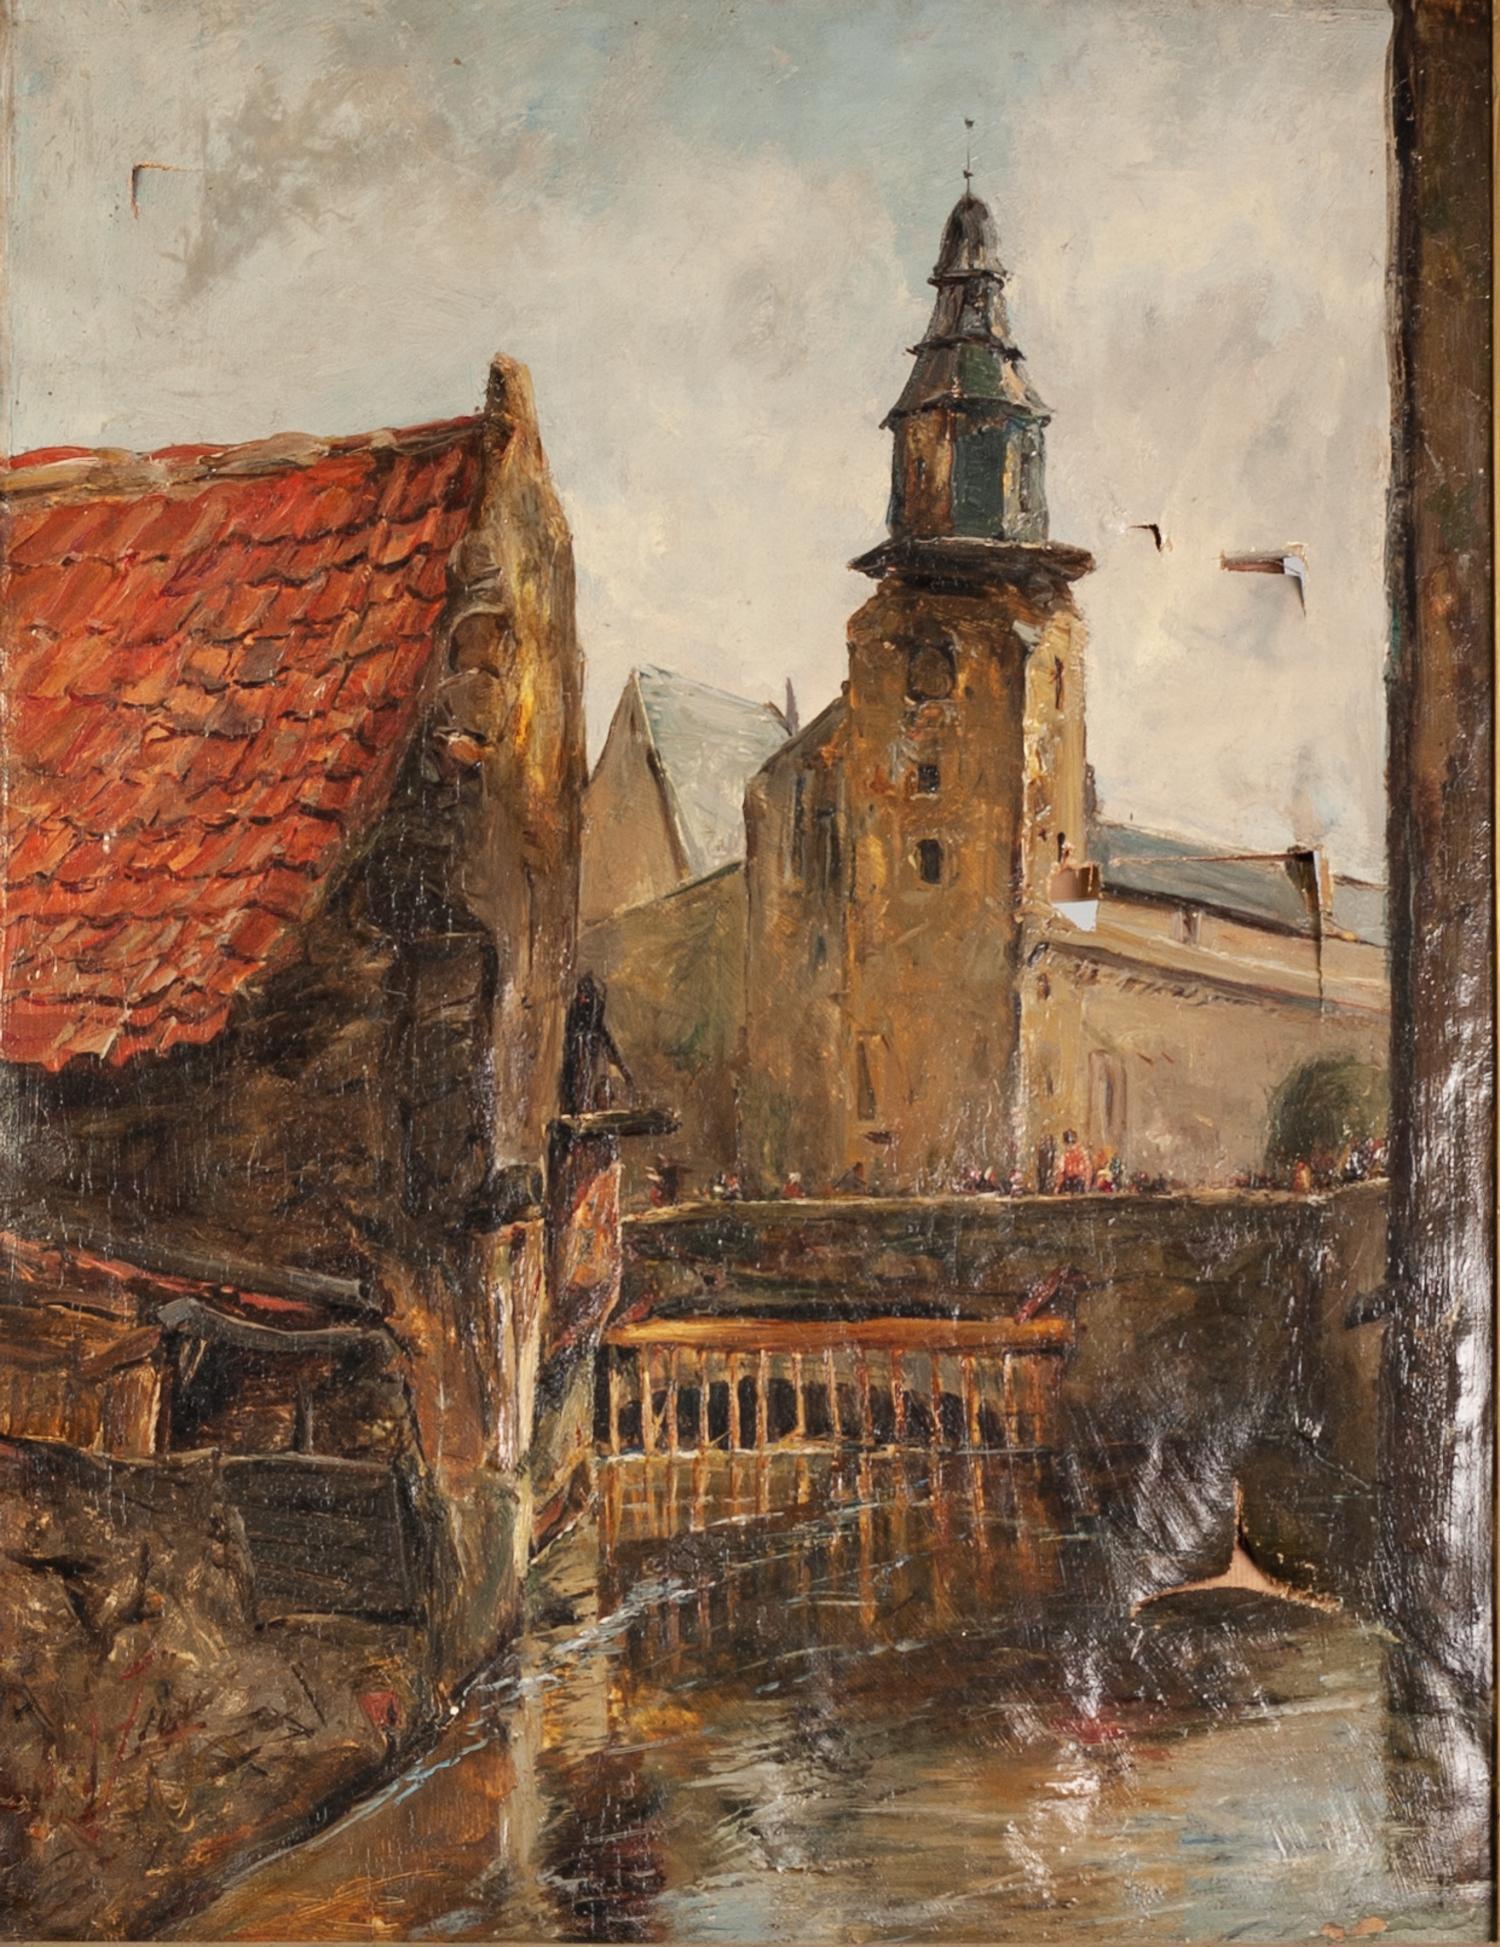 Lot 228 - ?A. FRASER (EARLY TWENTIETH CENTURY) OIL PAINTING ON CANVAS Continental town scene with river and